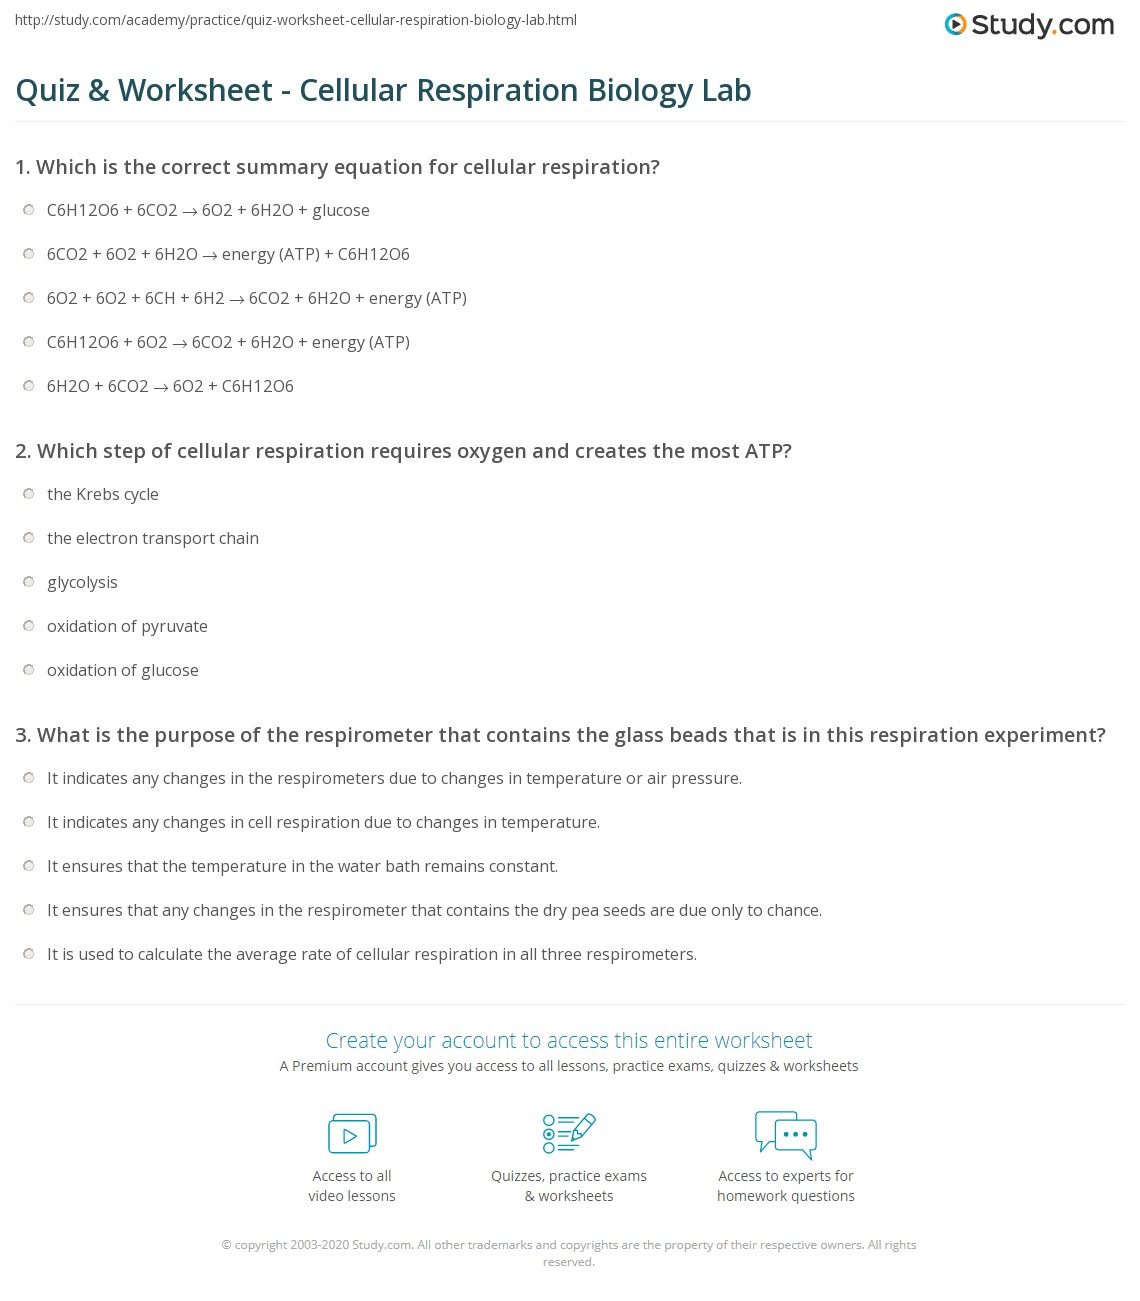 Quiz Worksheet Cellular Respiration Biology Lab Study